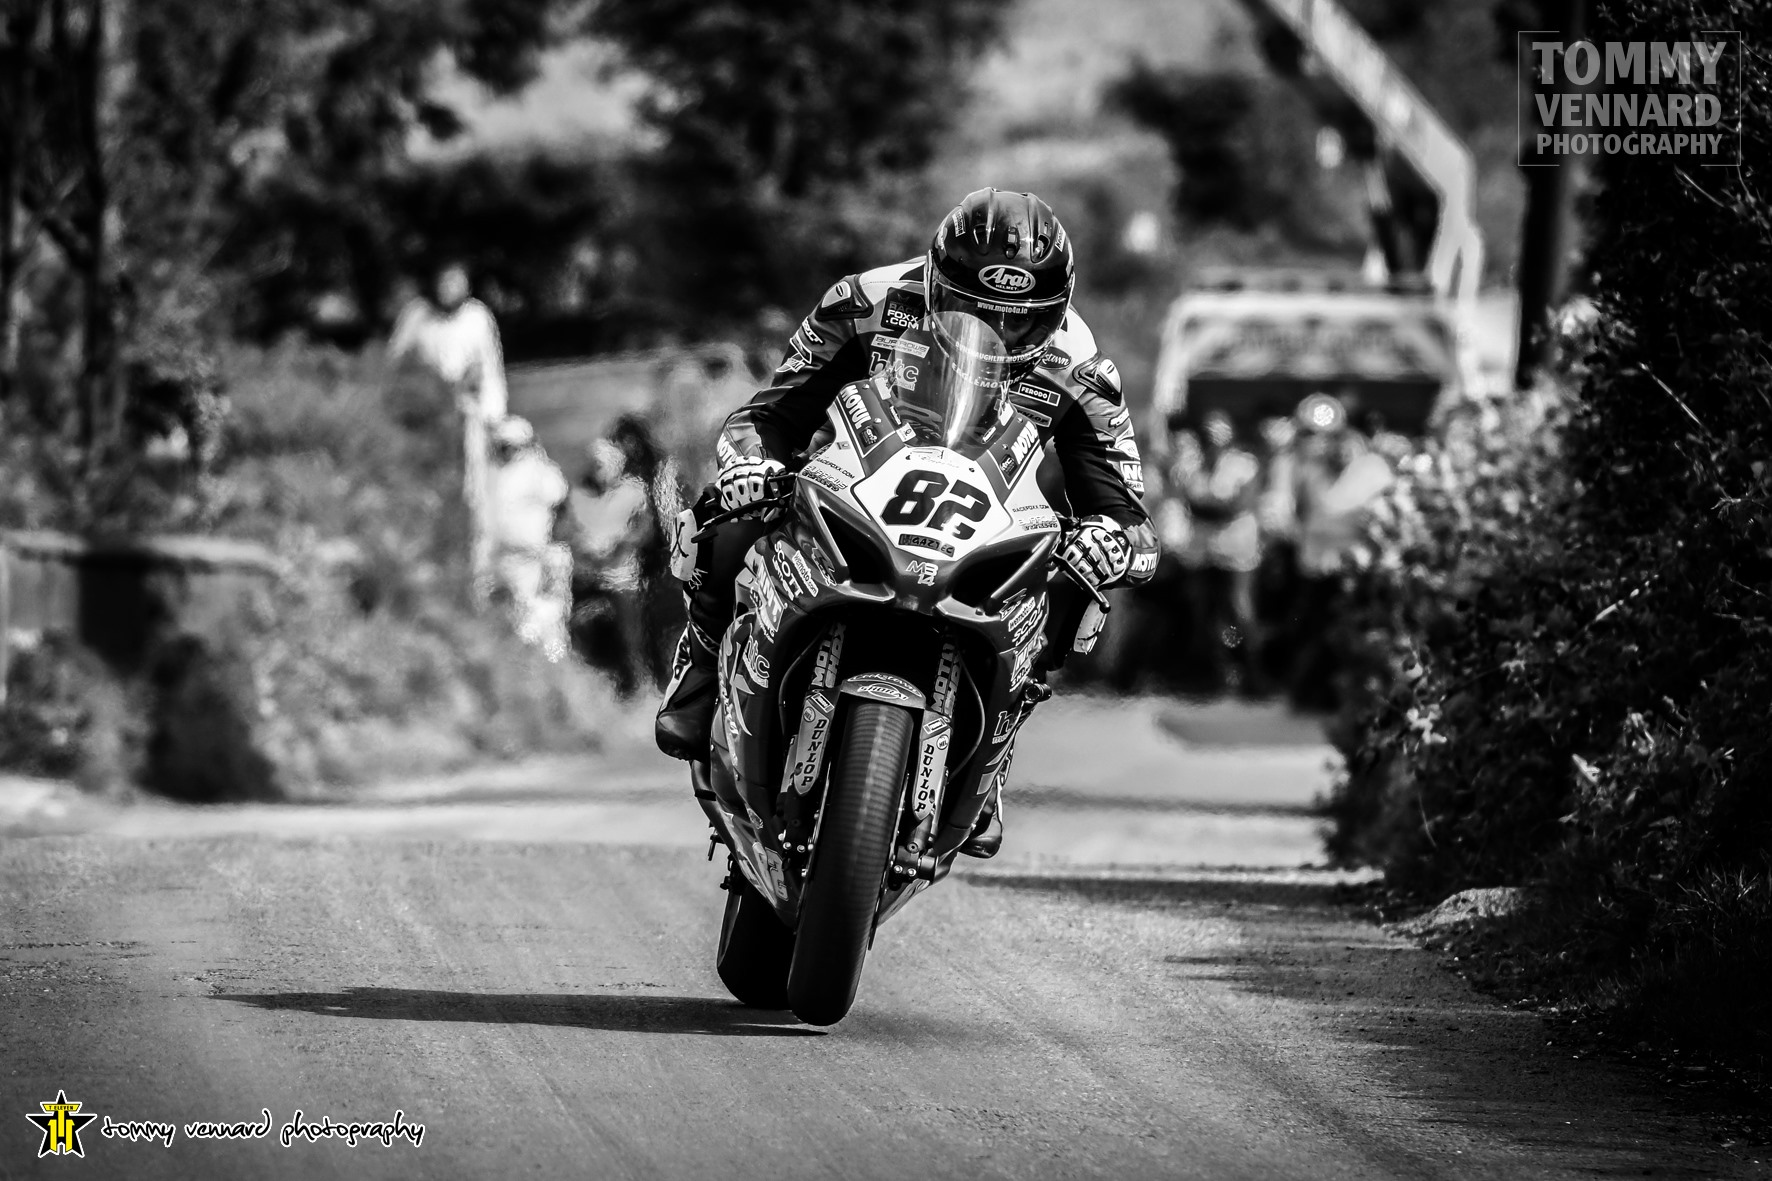 Faugheen 50: Sheils Wins Another Top Calibre Duel With McGee To Secure Feature Race Crown